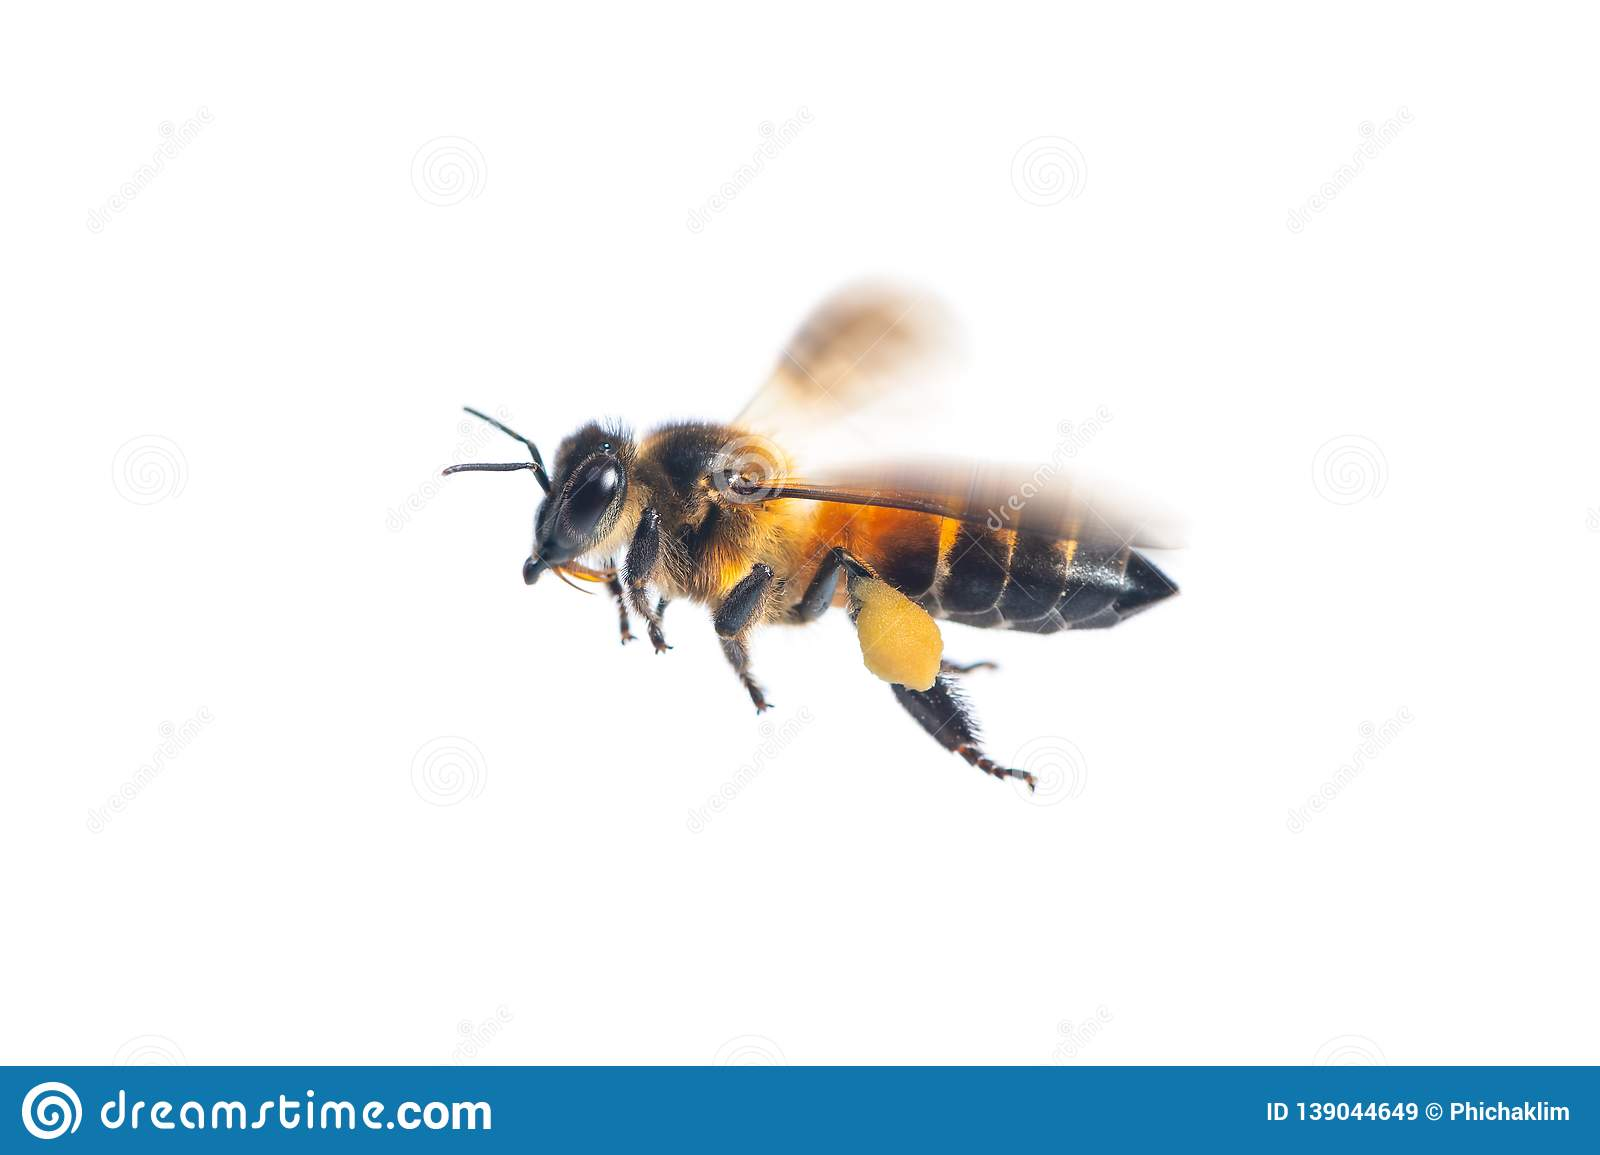 A close up of flying bee on white background